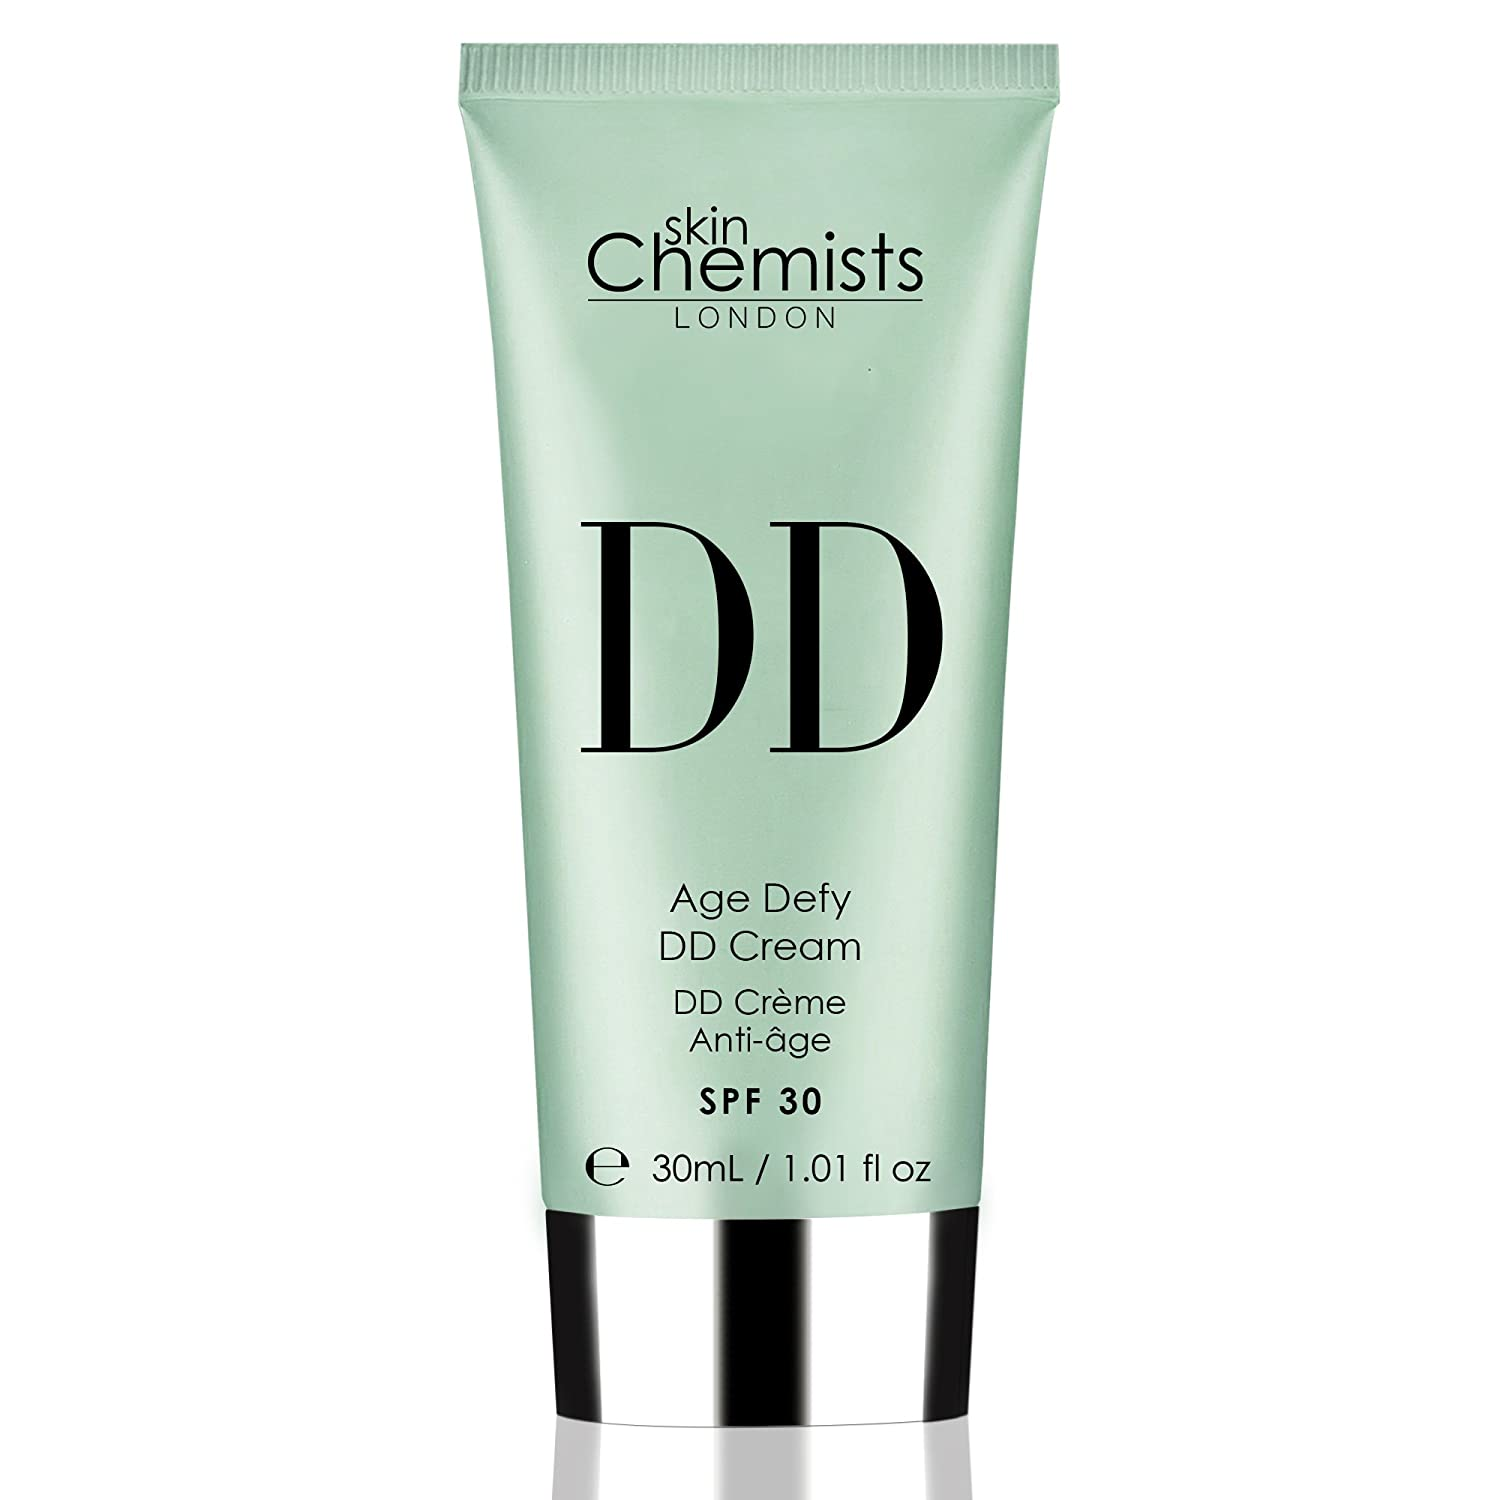 skinChemists Age Defying DD Medium Cream with SPF 30, 31 Gram SCDDM SCDDM_-30